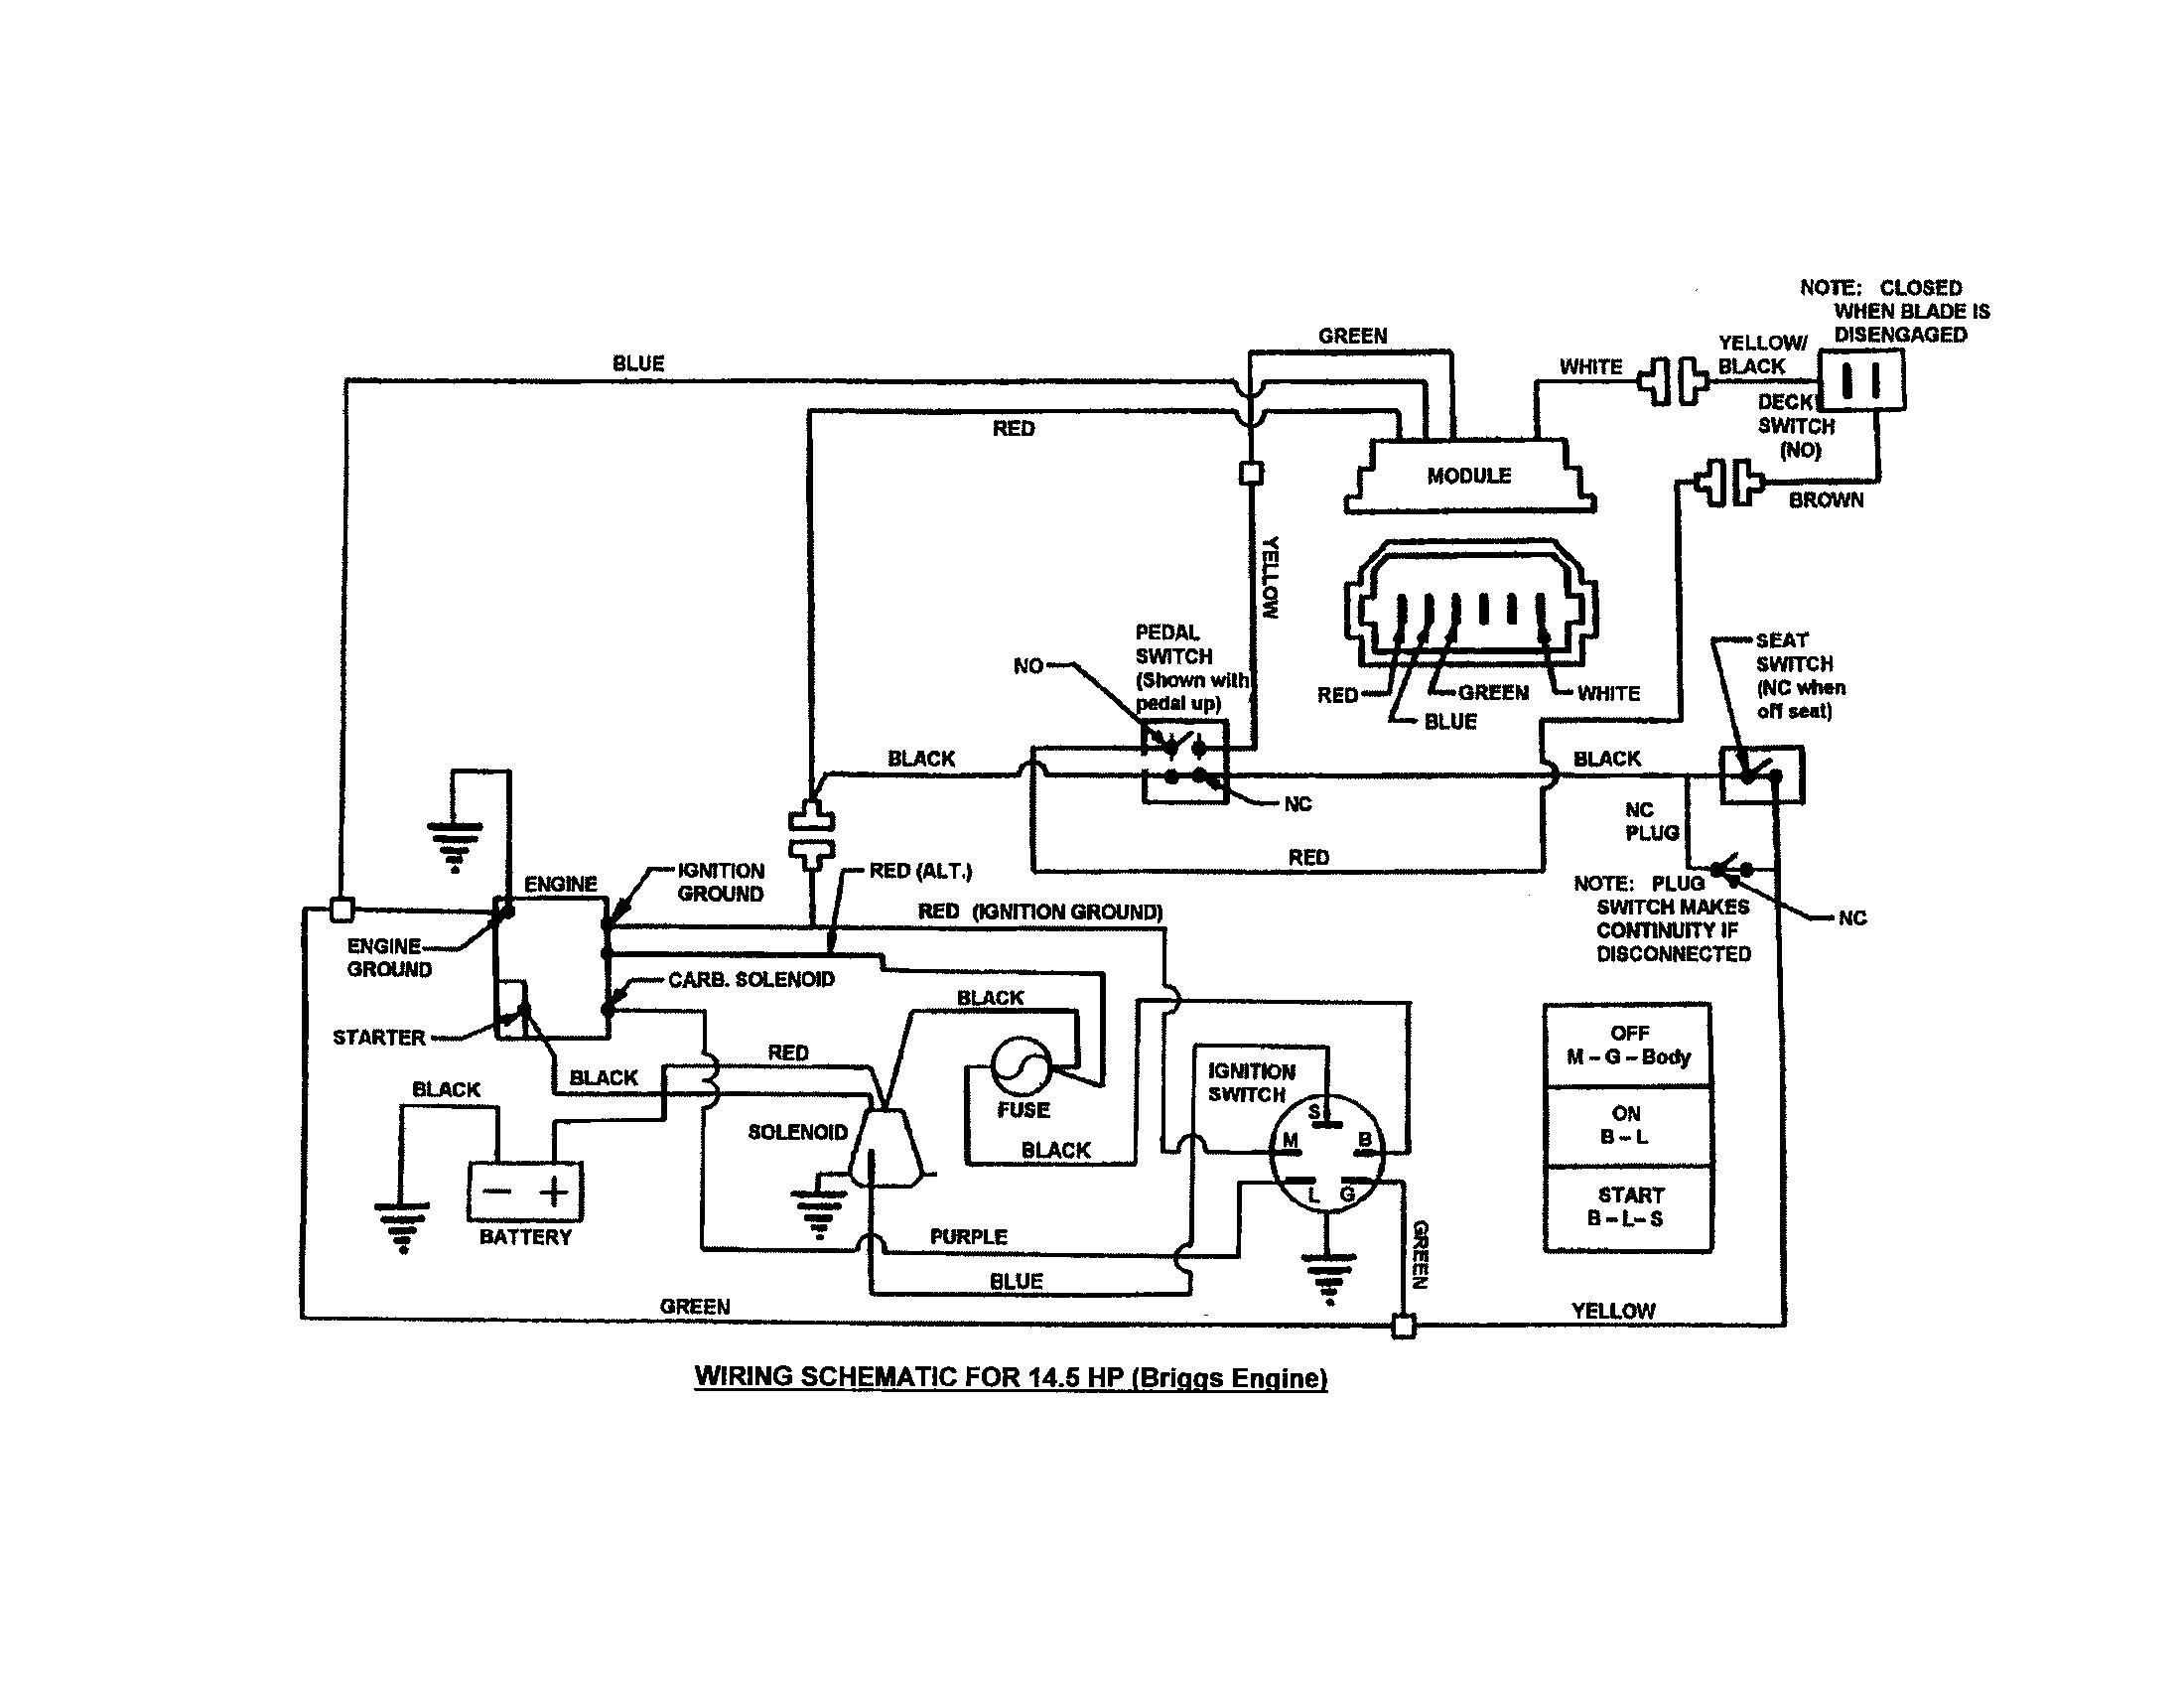 Yard Man Solenoid Wiring Diagram on solenoid connector, solenoid installation, solenoid parts, solenoid sensor, winch solenoid diagram, solenoid schematic, solenoid actuator, solenoid operation, solenoid circuit, ford solenoid diagram, starter diagram, solenoid assembly diagram, solenoid relay, solenoid valve, solenoid engine, solenoid coil, solenoid body diagram, solenoid wire, solenoid starter, solenoid switch diagram,